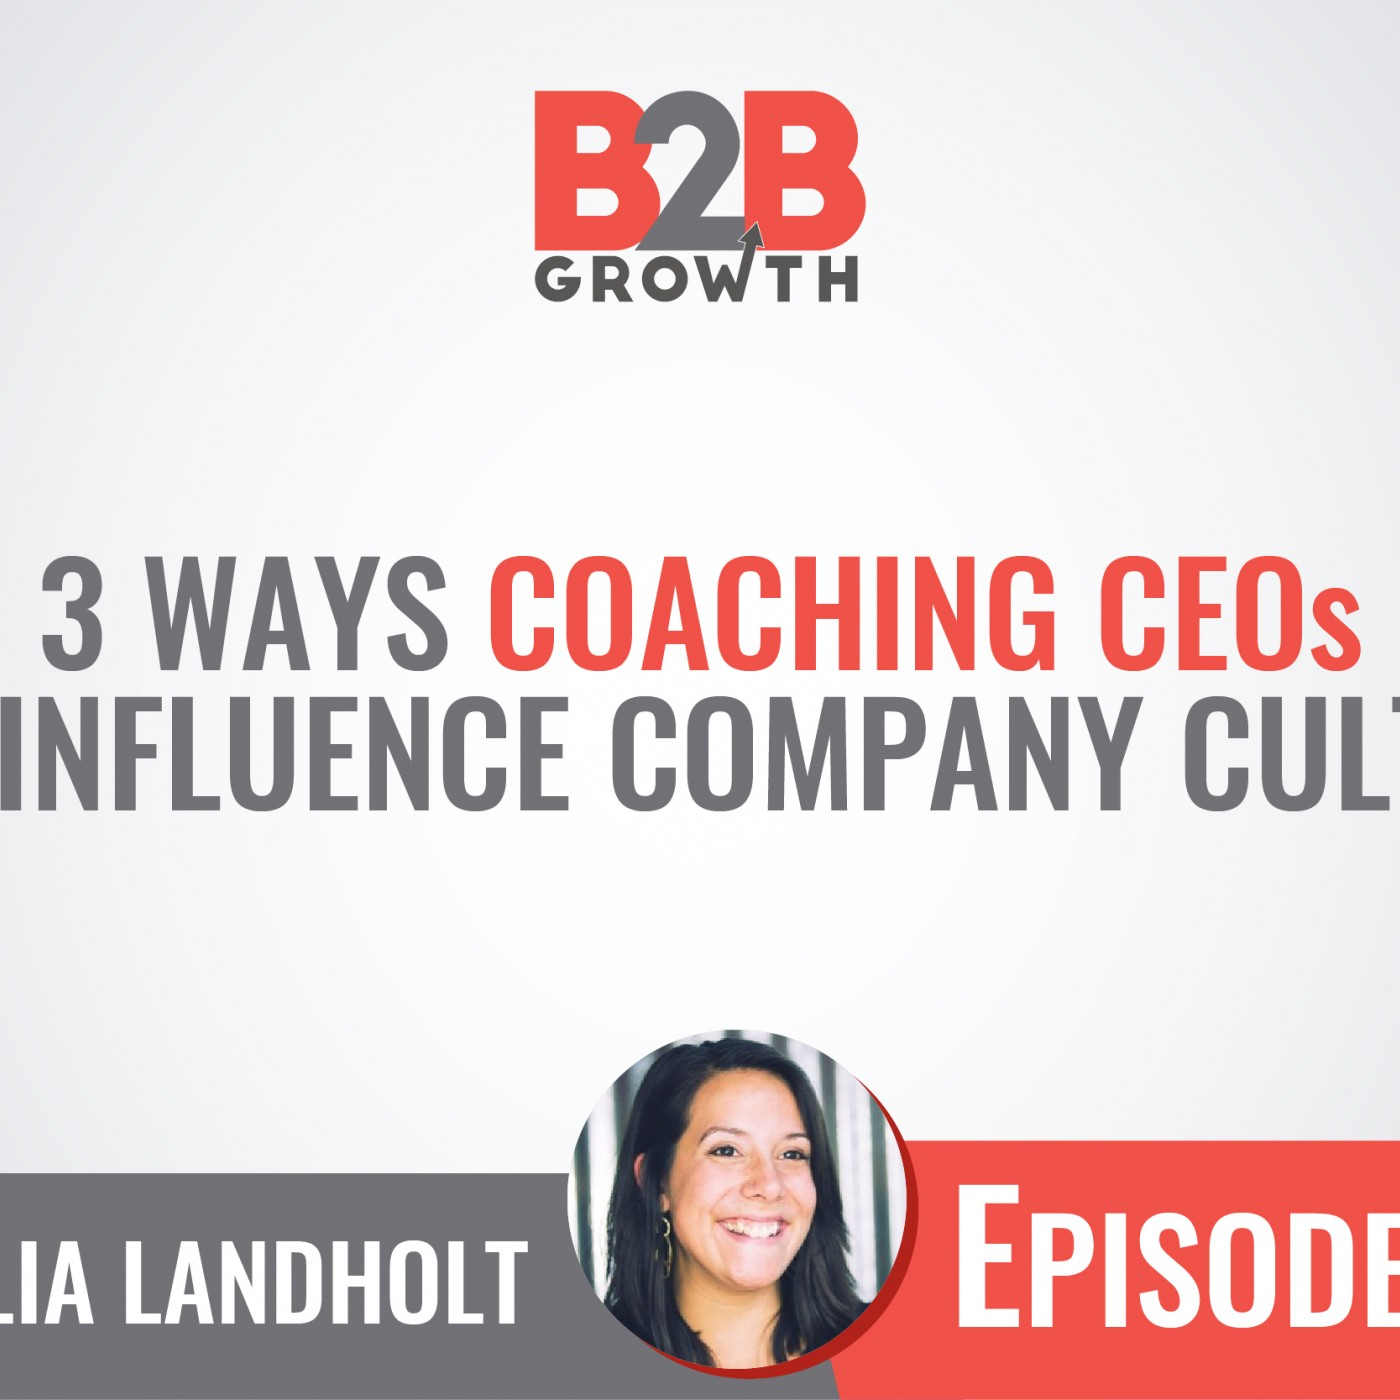 537: 3 Ways Coaching CEOs Can Influence Company Culture w/ Cecilia Landholt